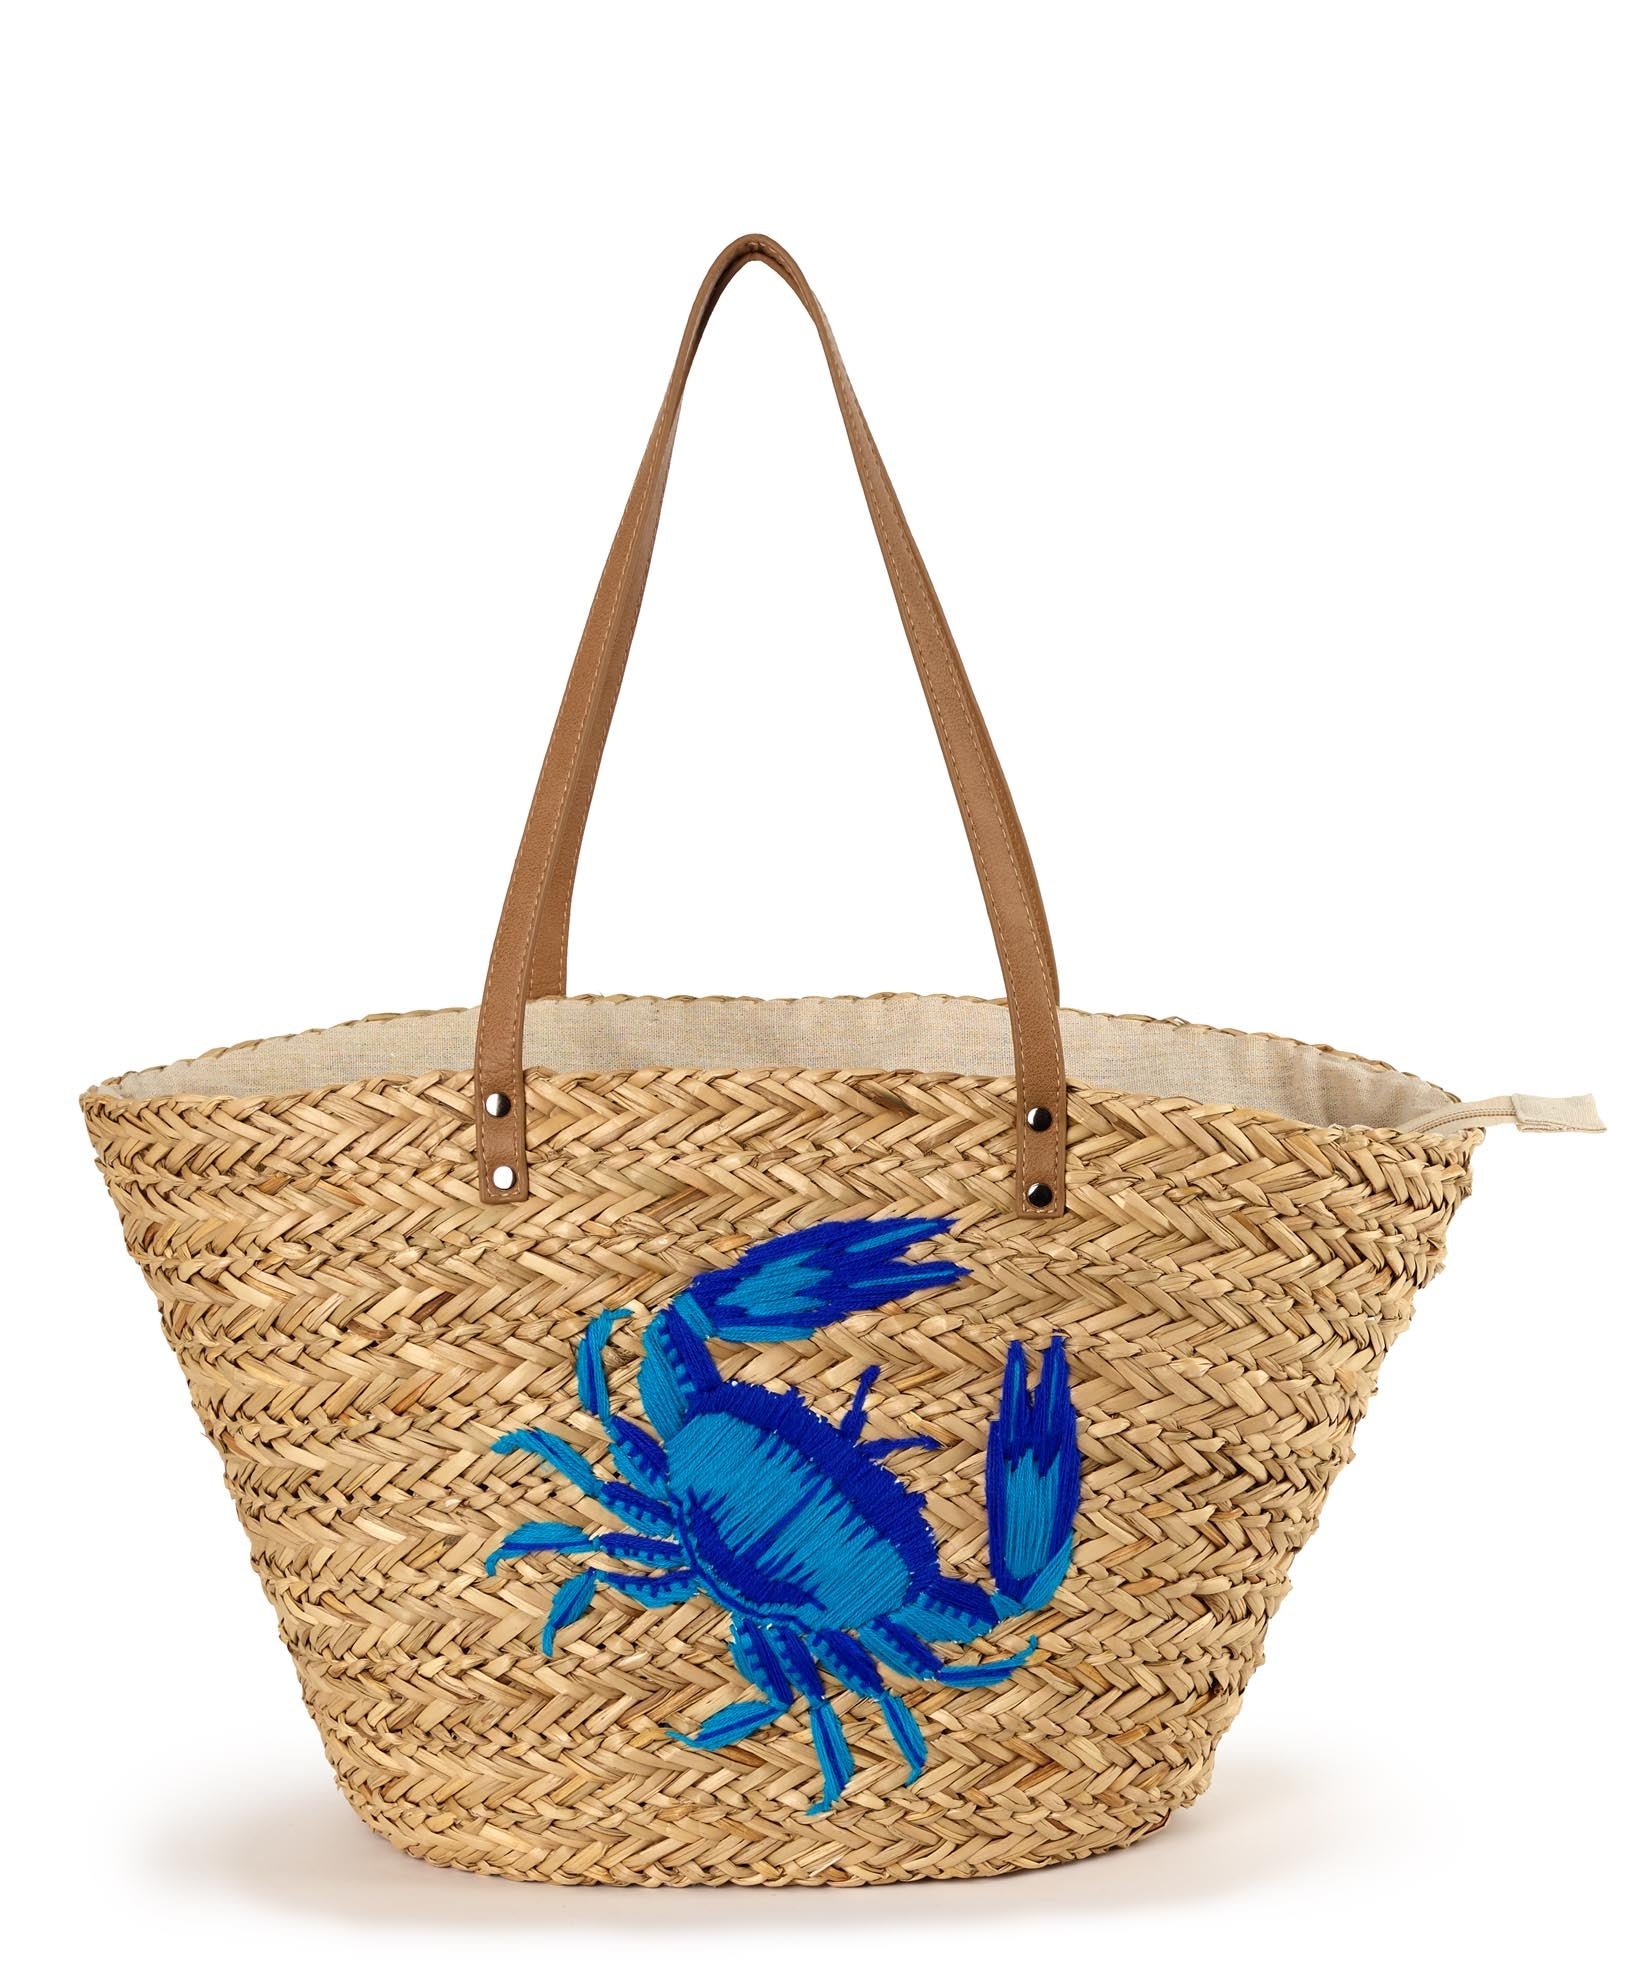 Azure - Under The Sea Straw Bag